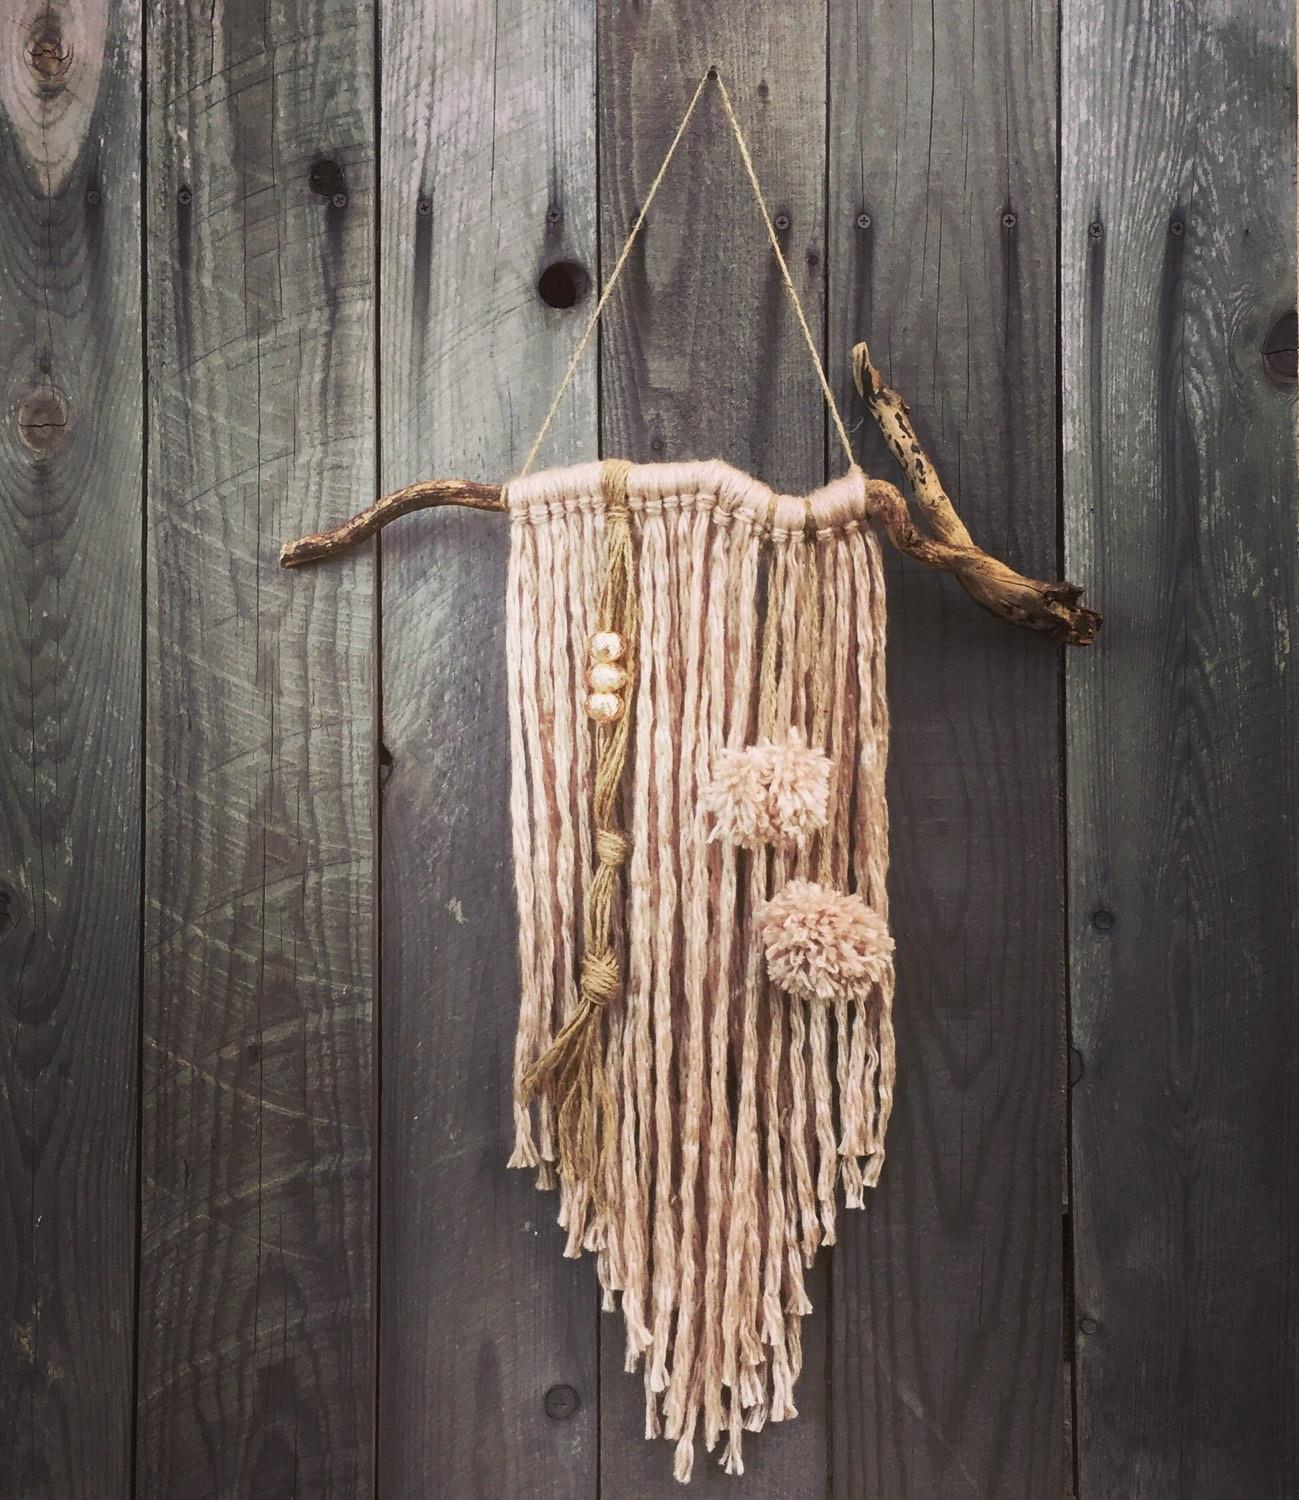 Boho Yarn Wall Hanging Home Decor Tassel Wind Chime